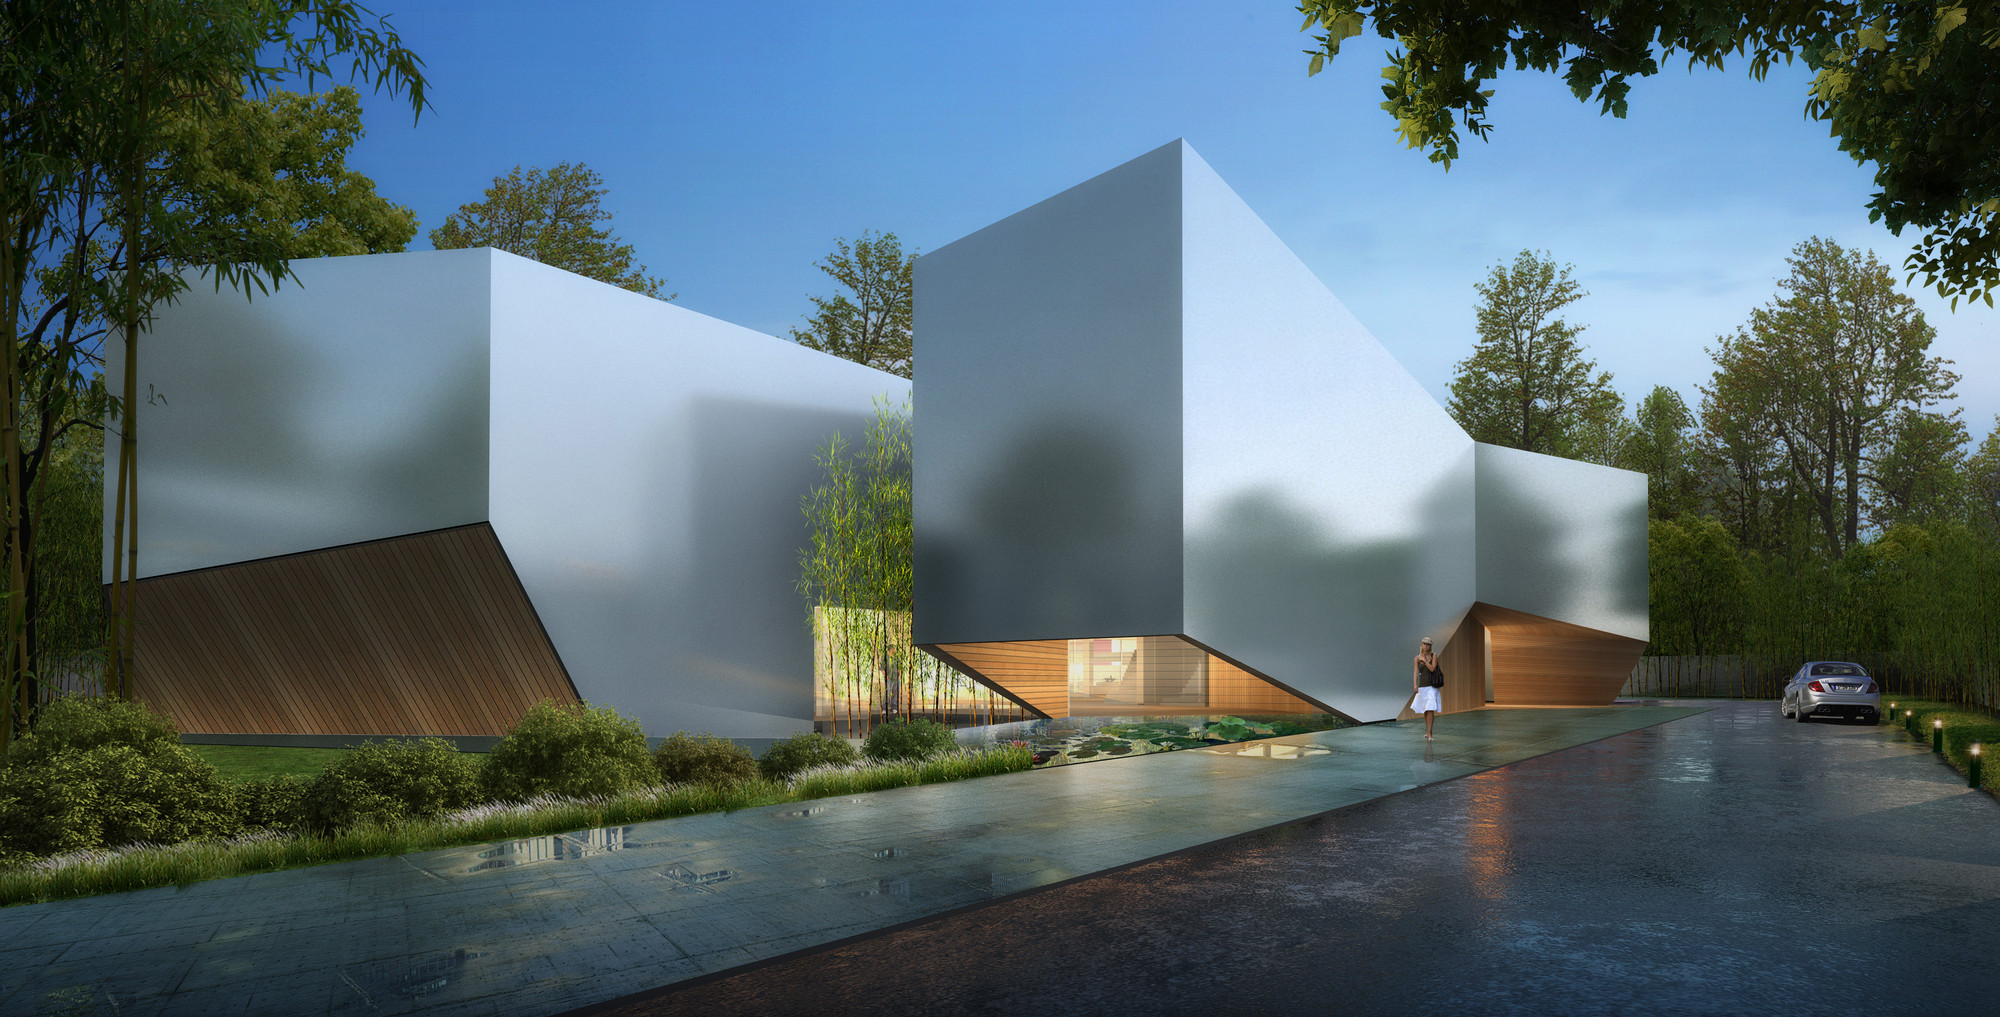 Shanghai Flower Garden Square Real Time Architecture